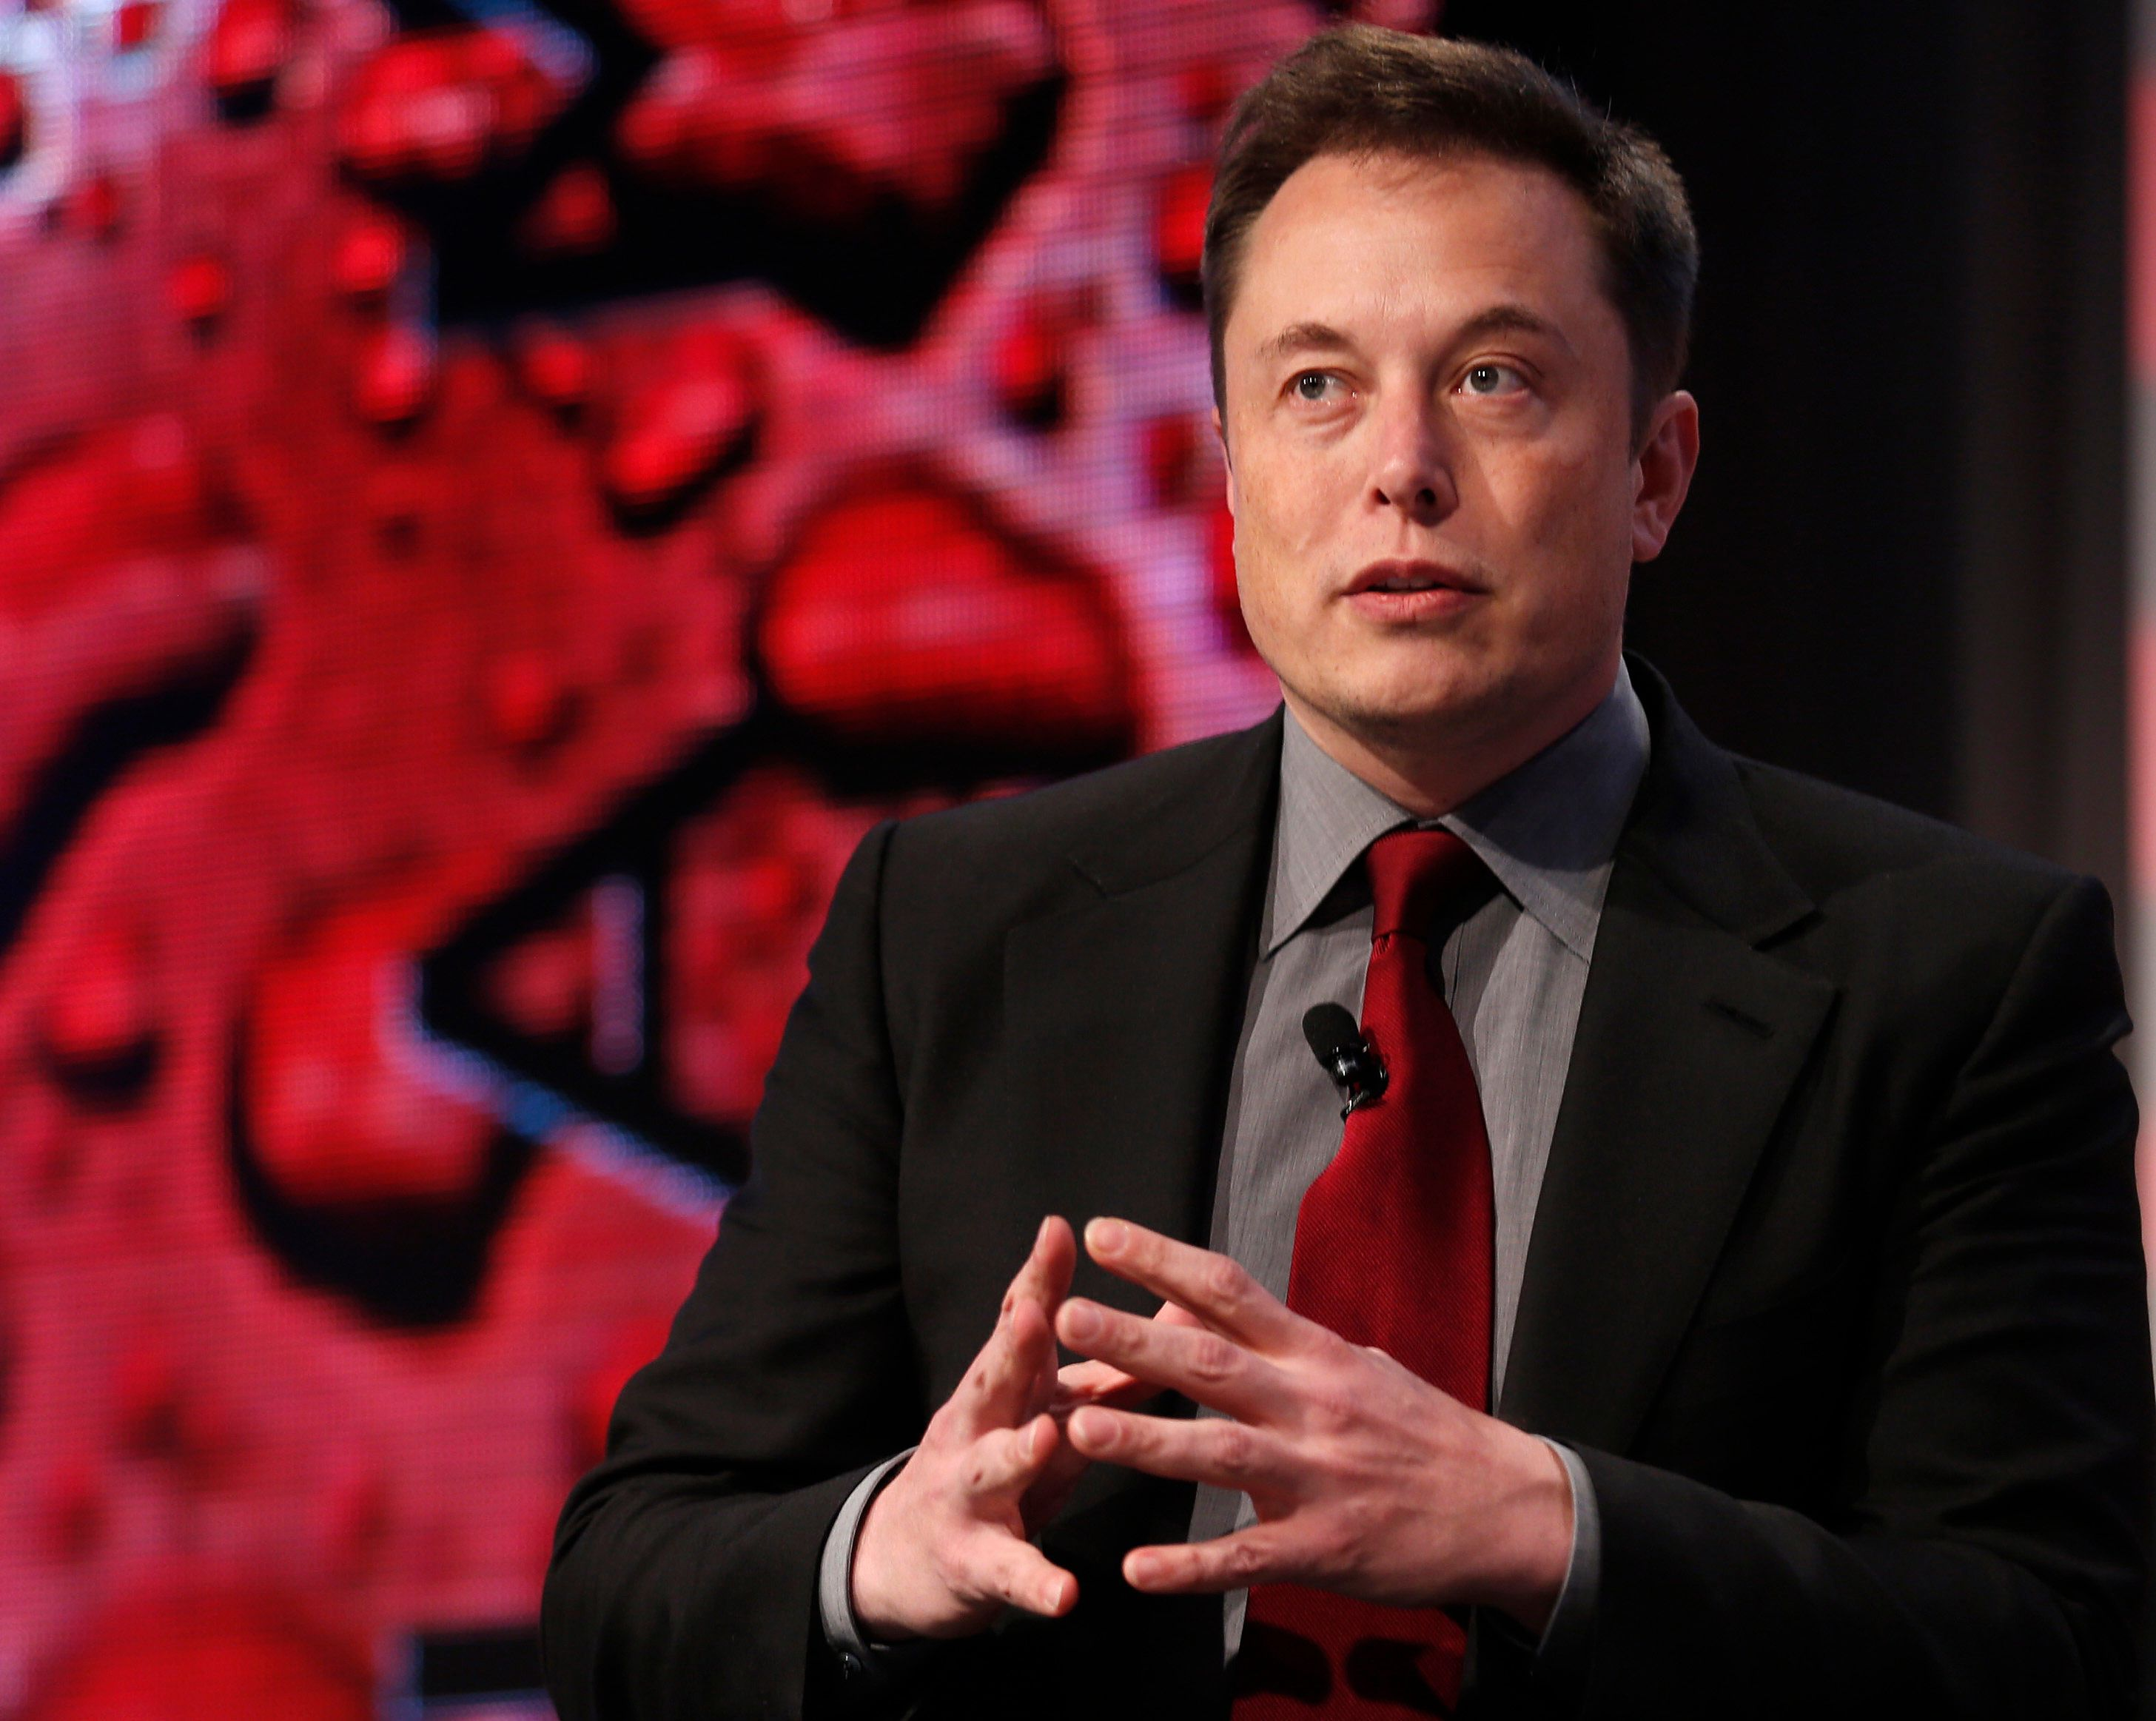 Tesla Motors CEO Elon Musk talks at the Automotive World News Congress at the Renaissance Center in Detroit, Michigan, January 13, 2015.   REUTERS/Rebecca Cook   (UNITED STATES - Tags: TRANSPORT BUSINESS)